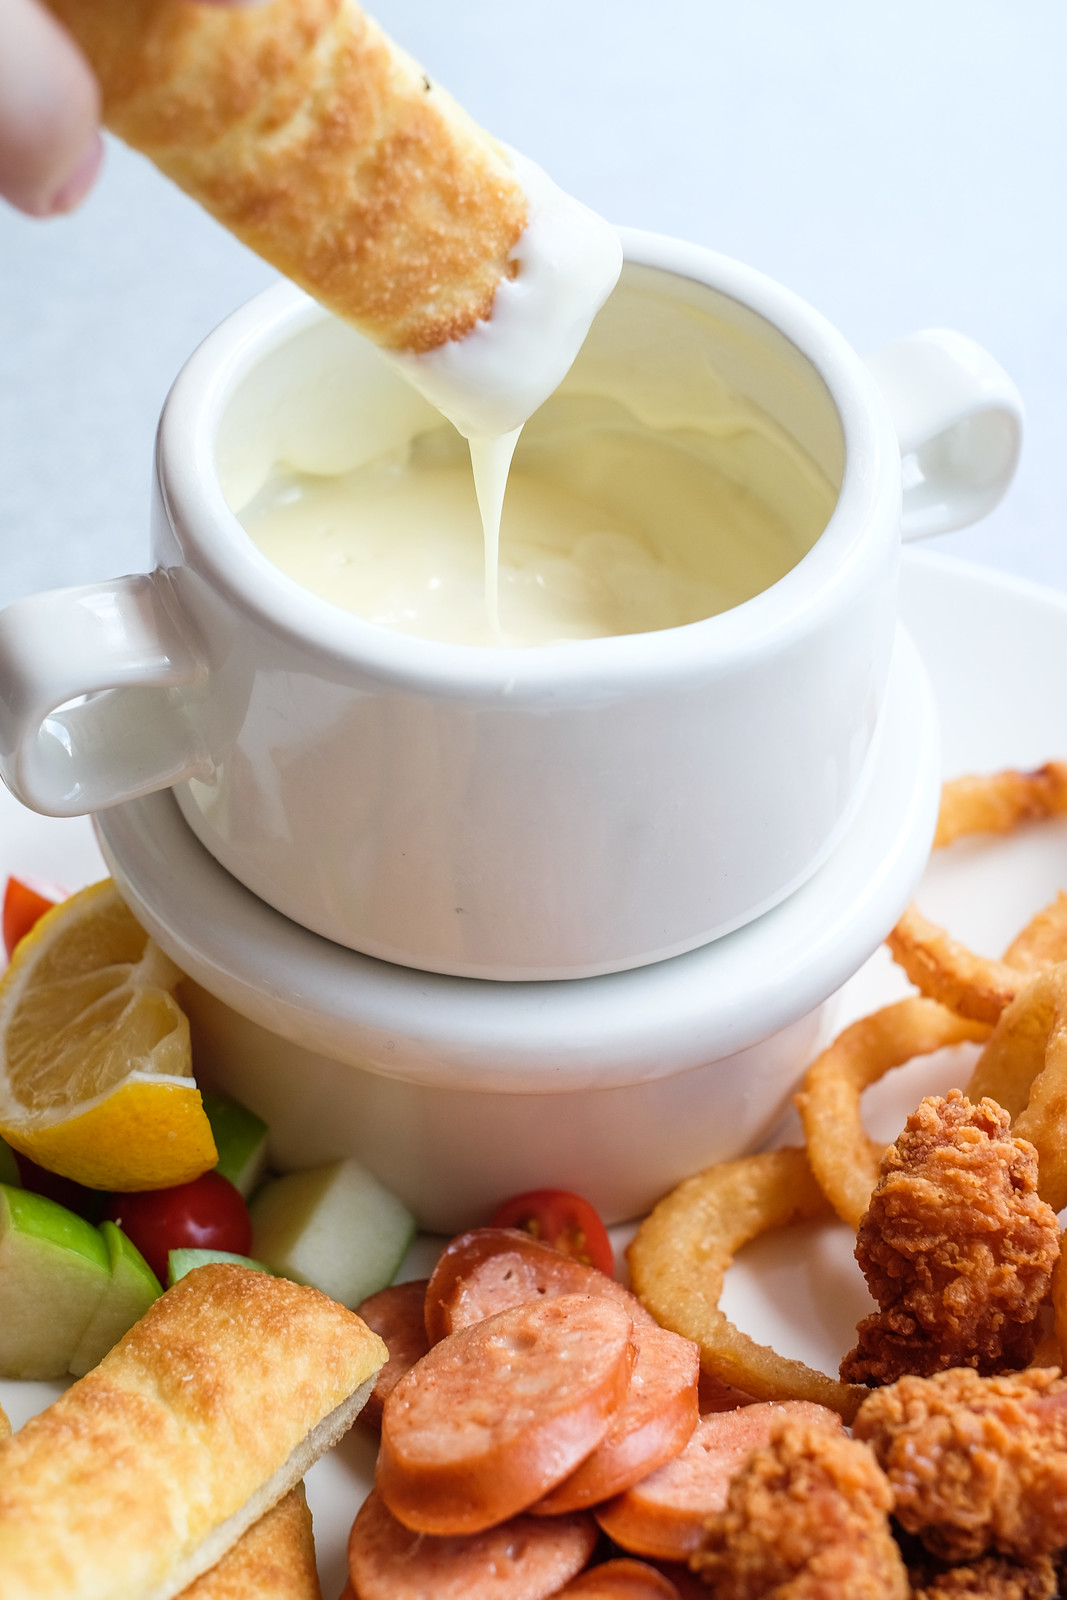 Pizza Hut's melting pot of Cheese Fondue